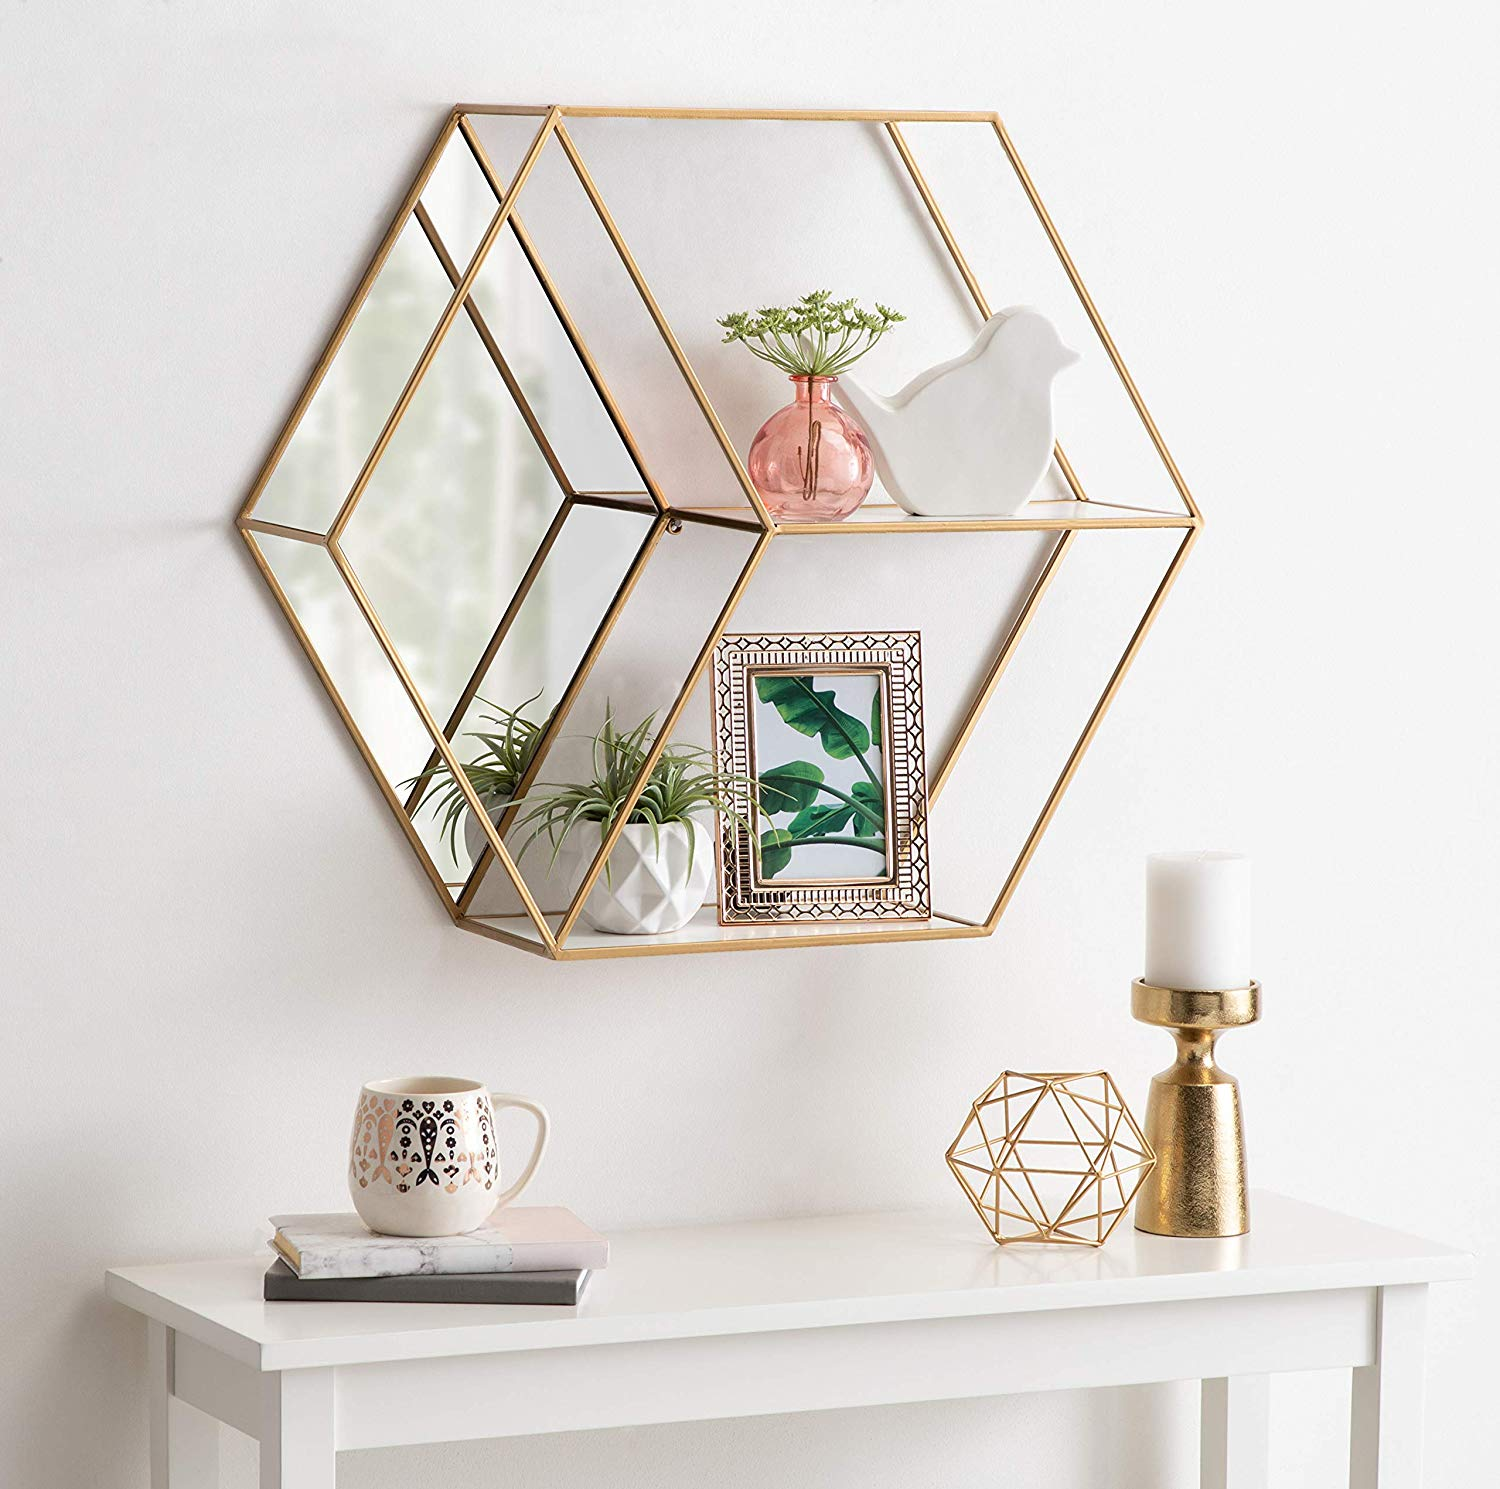 Modern Hexagon Wall Mirror with Shelves with Mirror